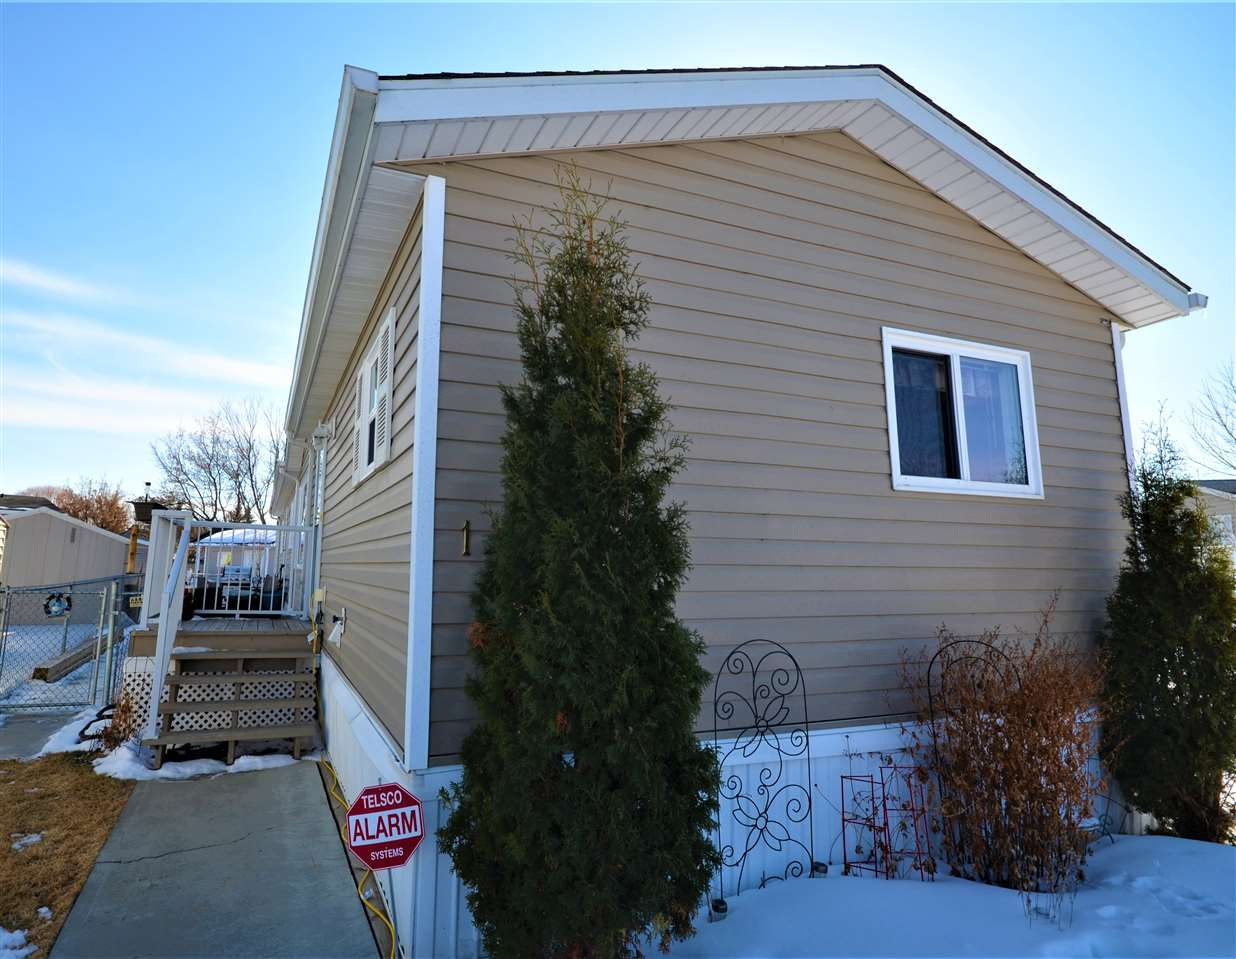 1322 53222 RGE RD 272, 3 bed, 2 bath, at $103,800